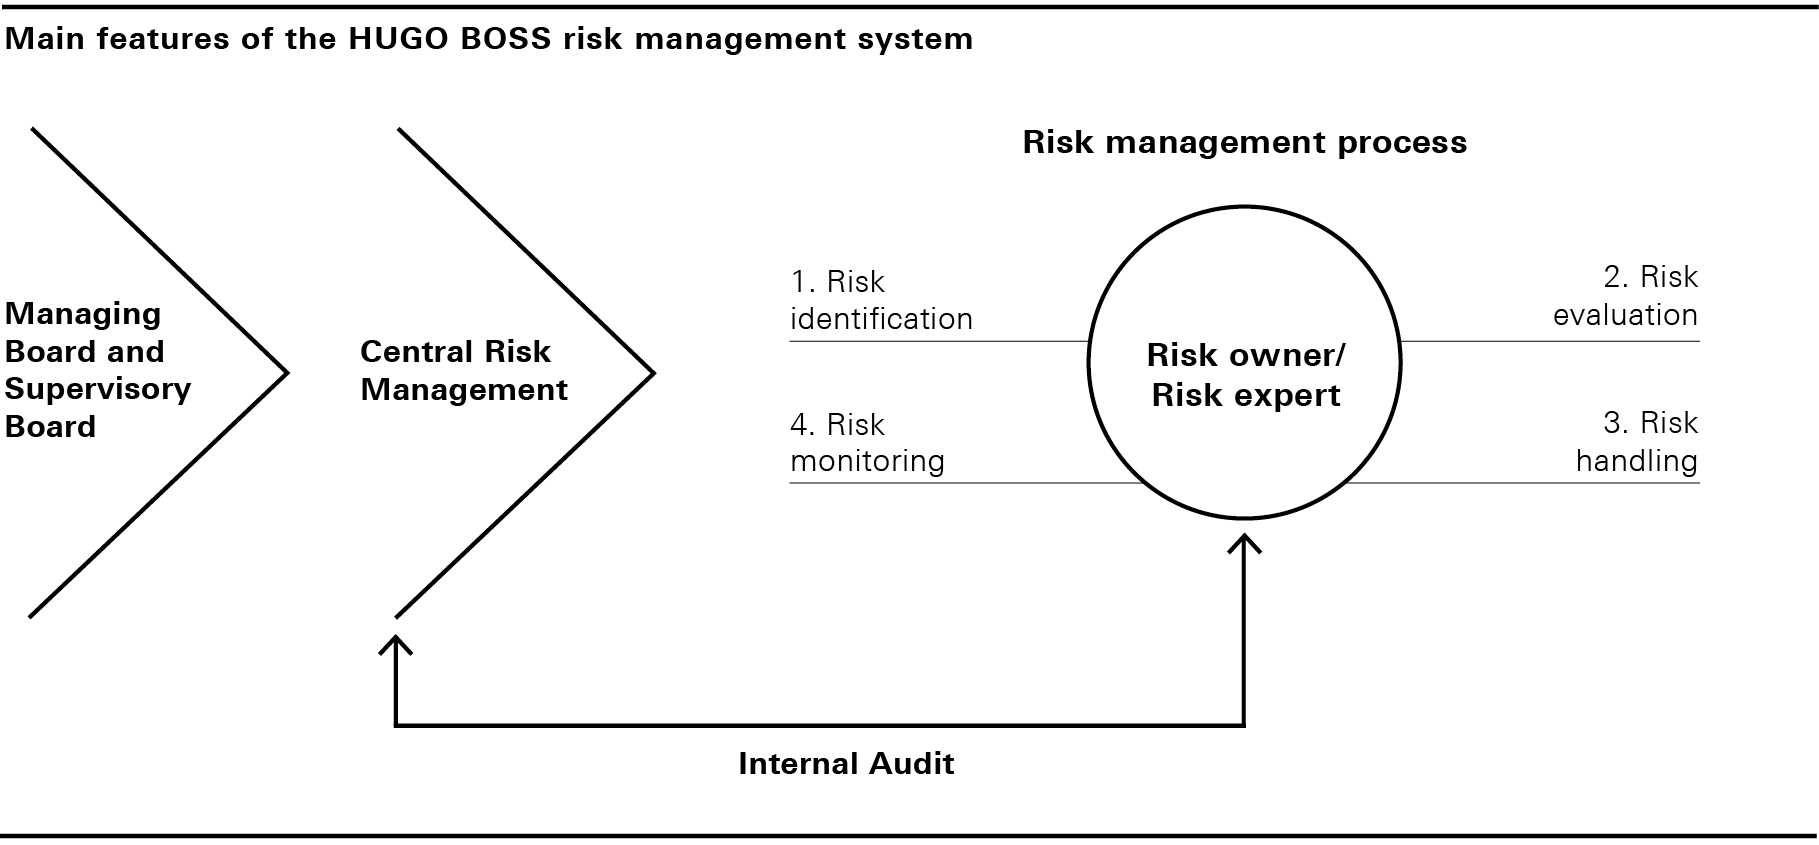 Main features of the HUGO BOSS risk management system (graphic)